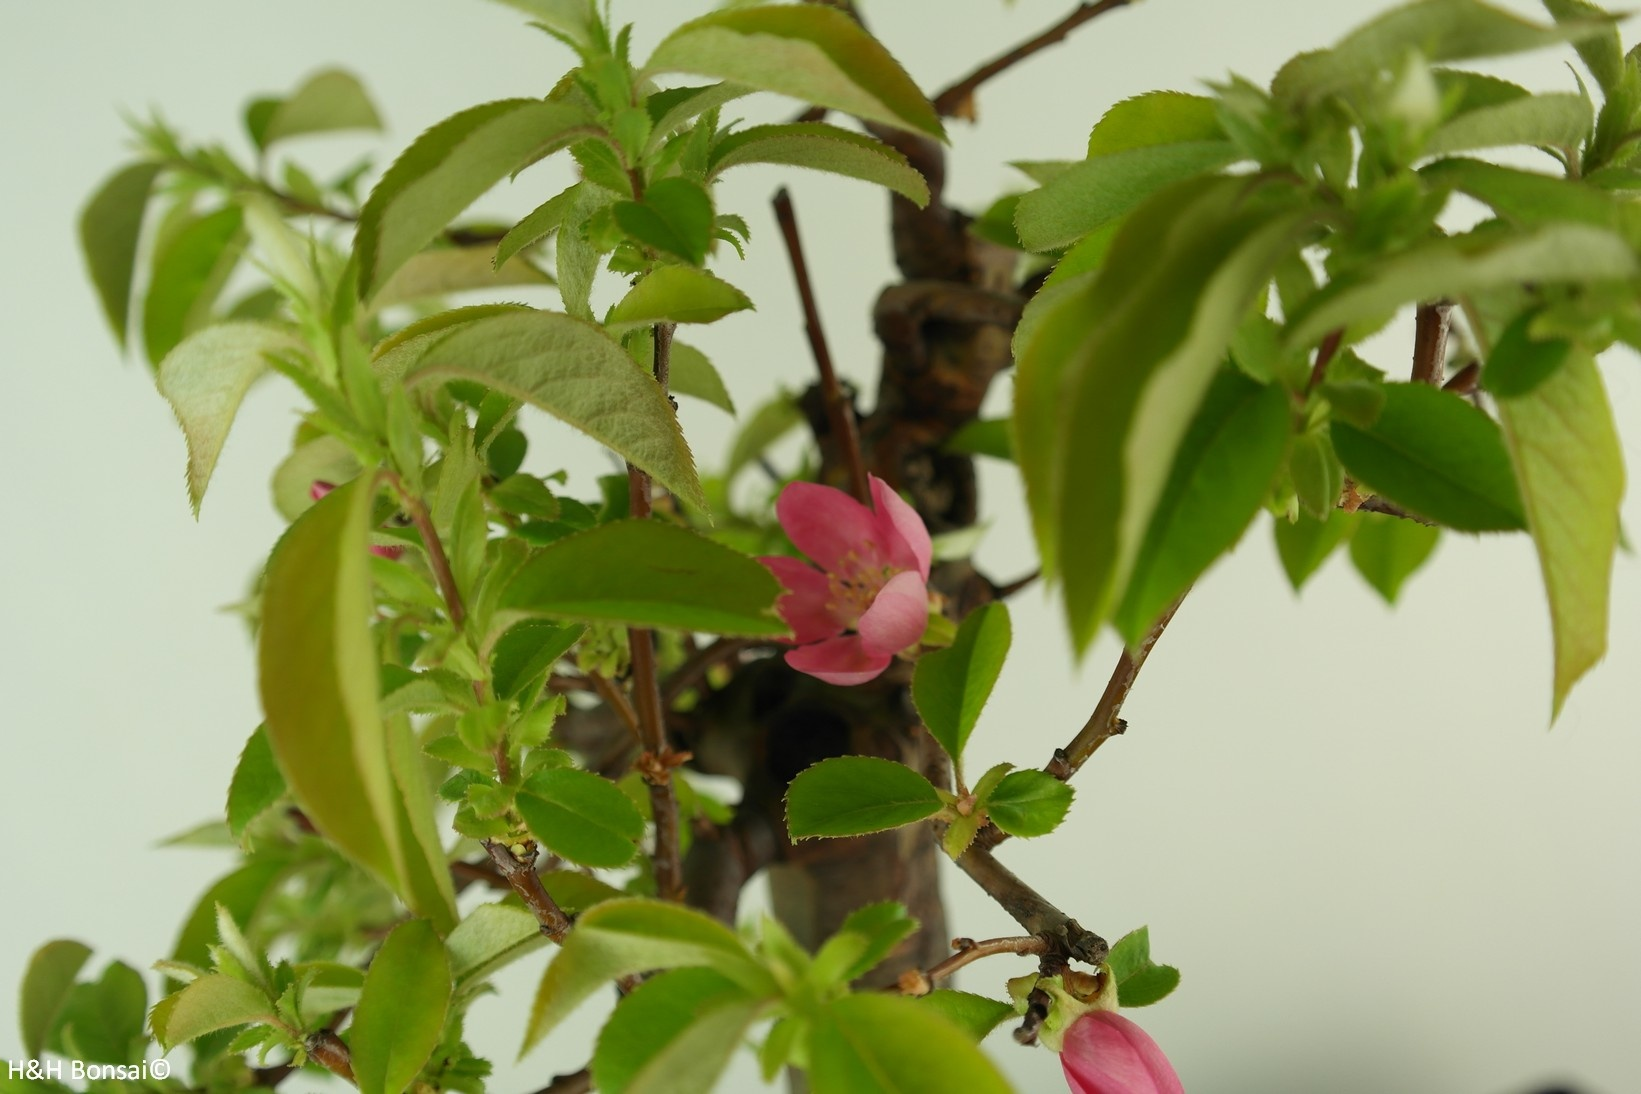 Bonsai Chinese Quince, Pseudocydonia sinensis, no. 7649